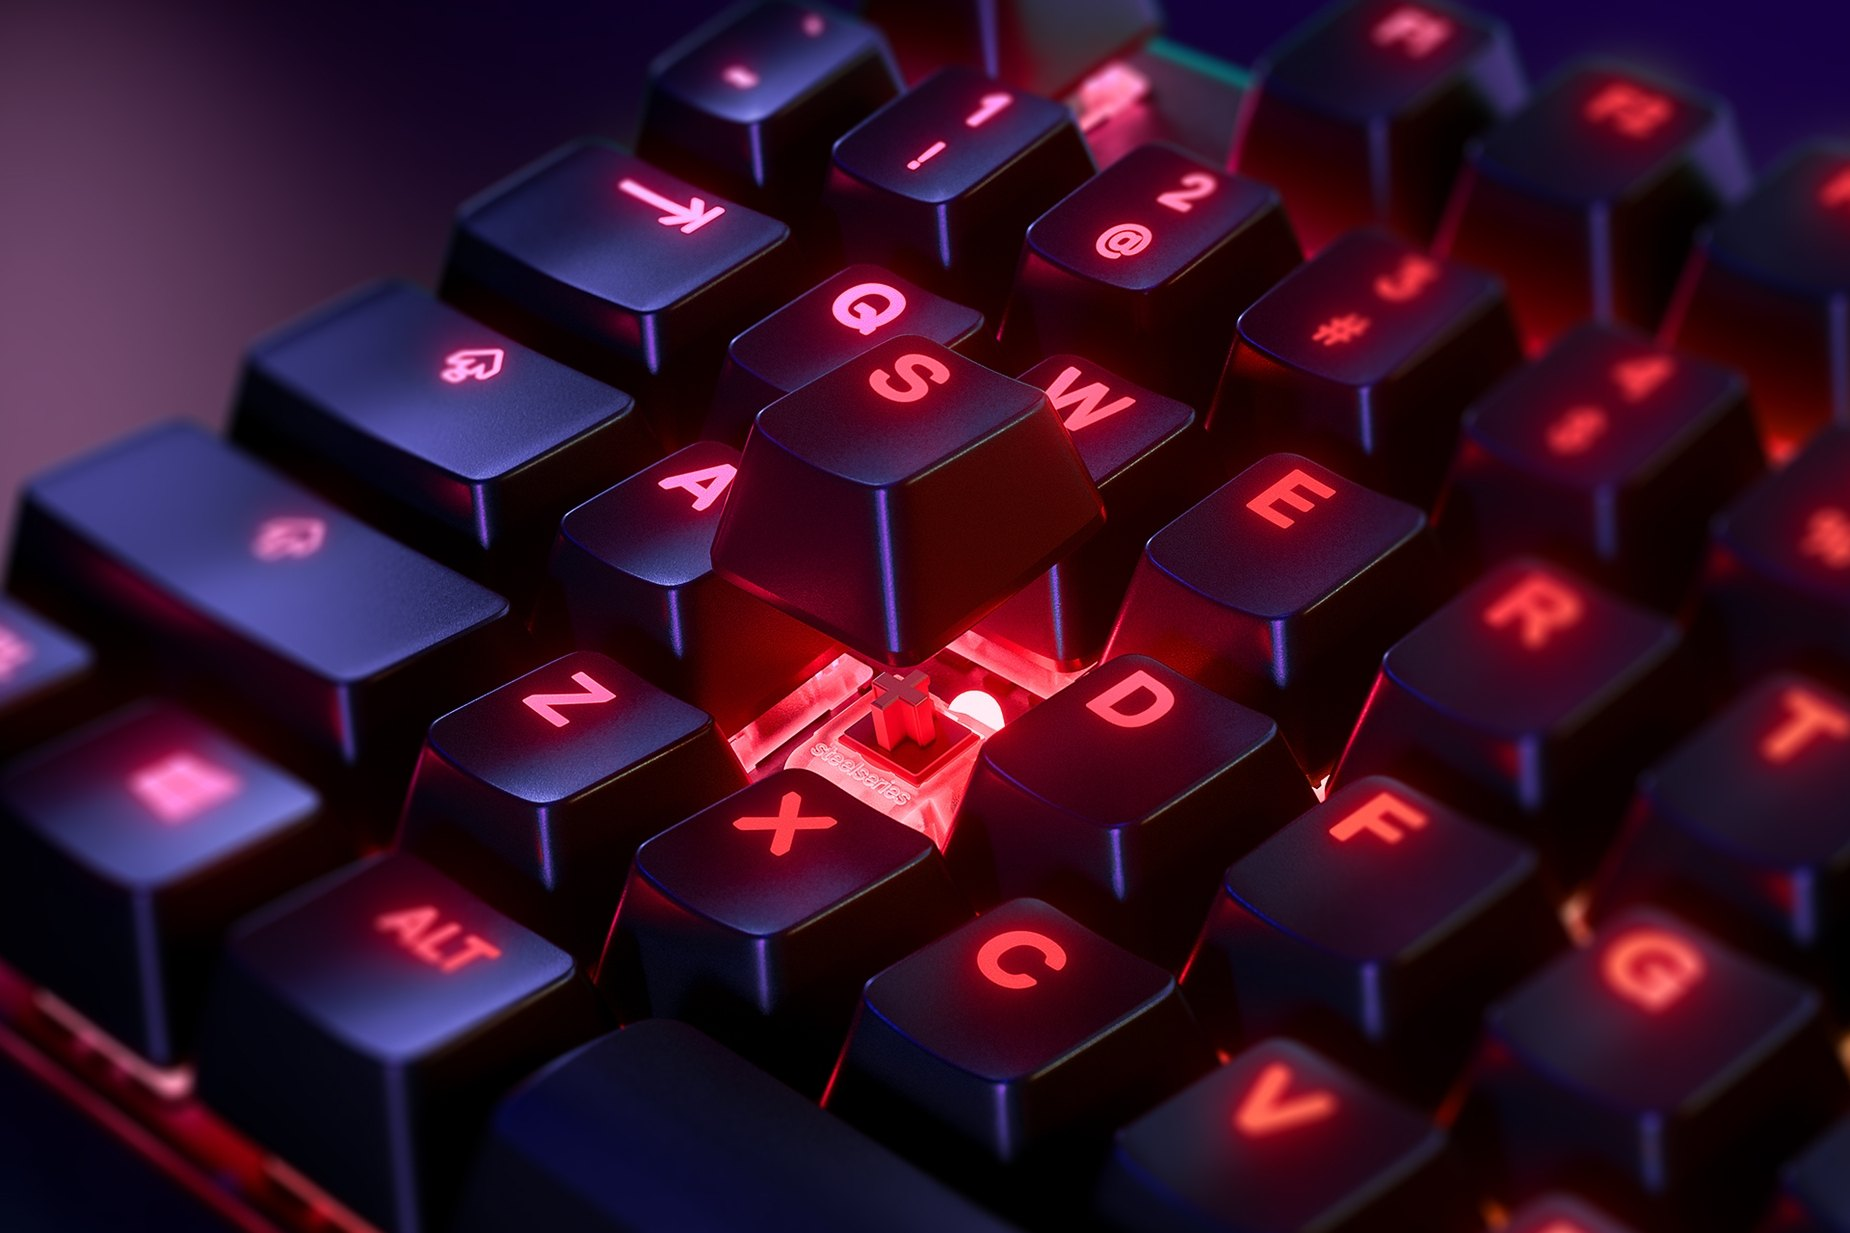 Zoomed in view of a single key on the US English - Apex 7 TKL (Red Switch) gaming keyboard, the key is raised up to show the SteelSeries QX2 Mechanical RGB Switch underneath